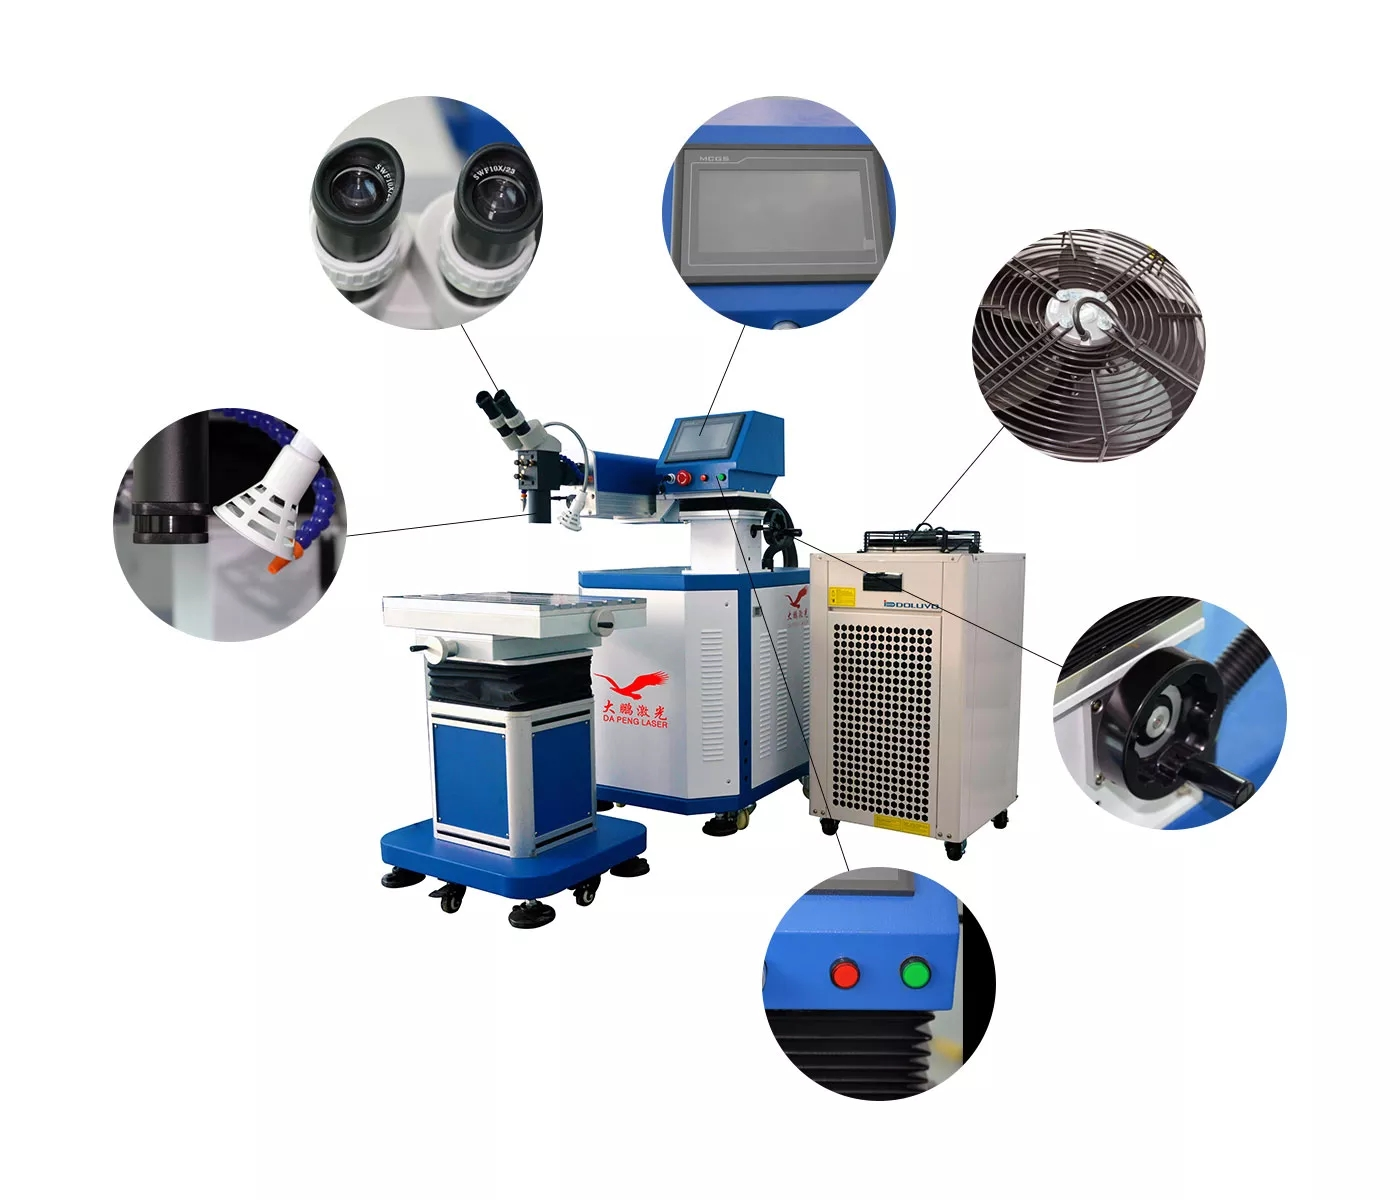 Hardware mold repair laser welding machine special price 200W